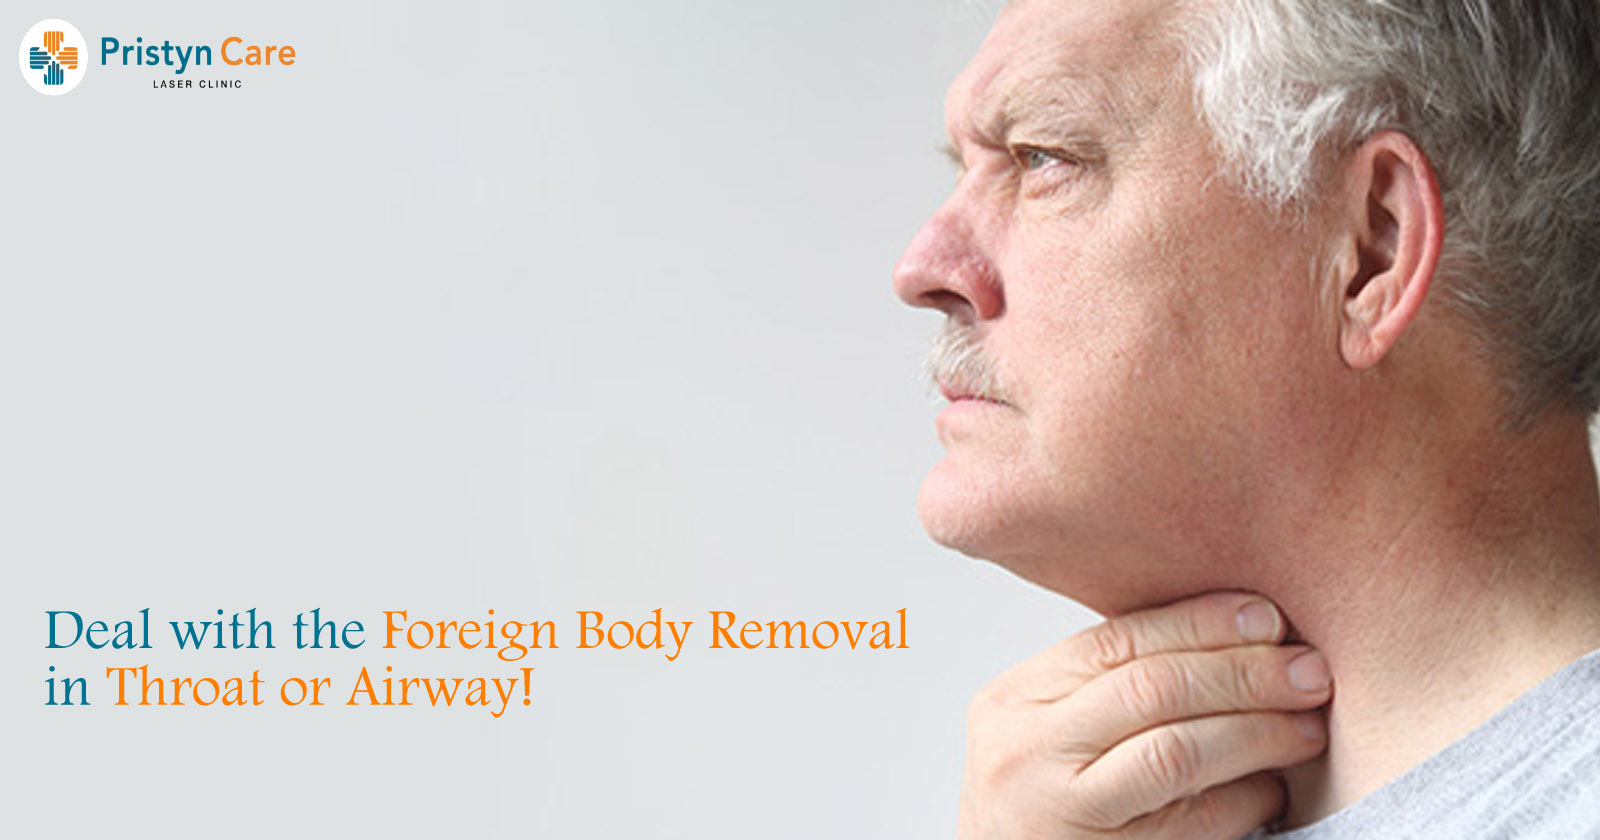 deal-with-the-foreign-body-removal-in-throat-or-airway